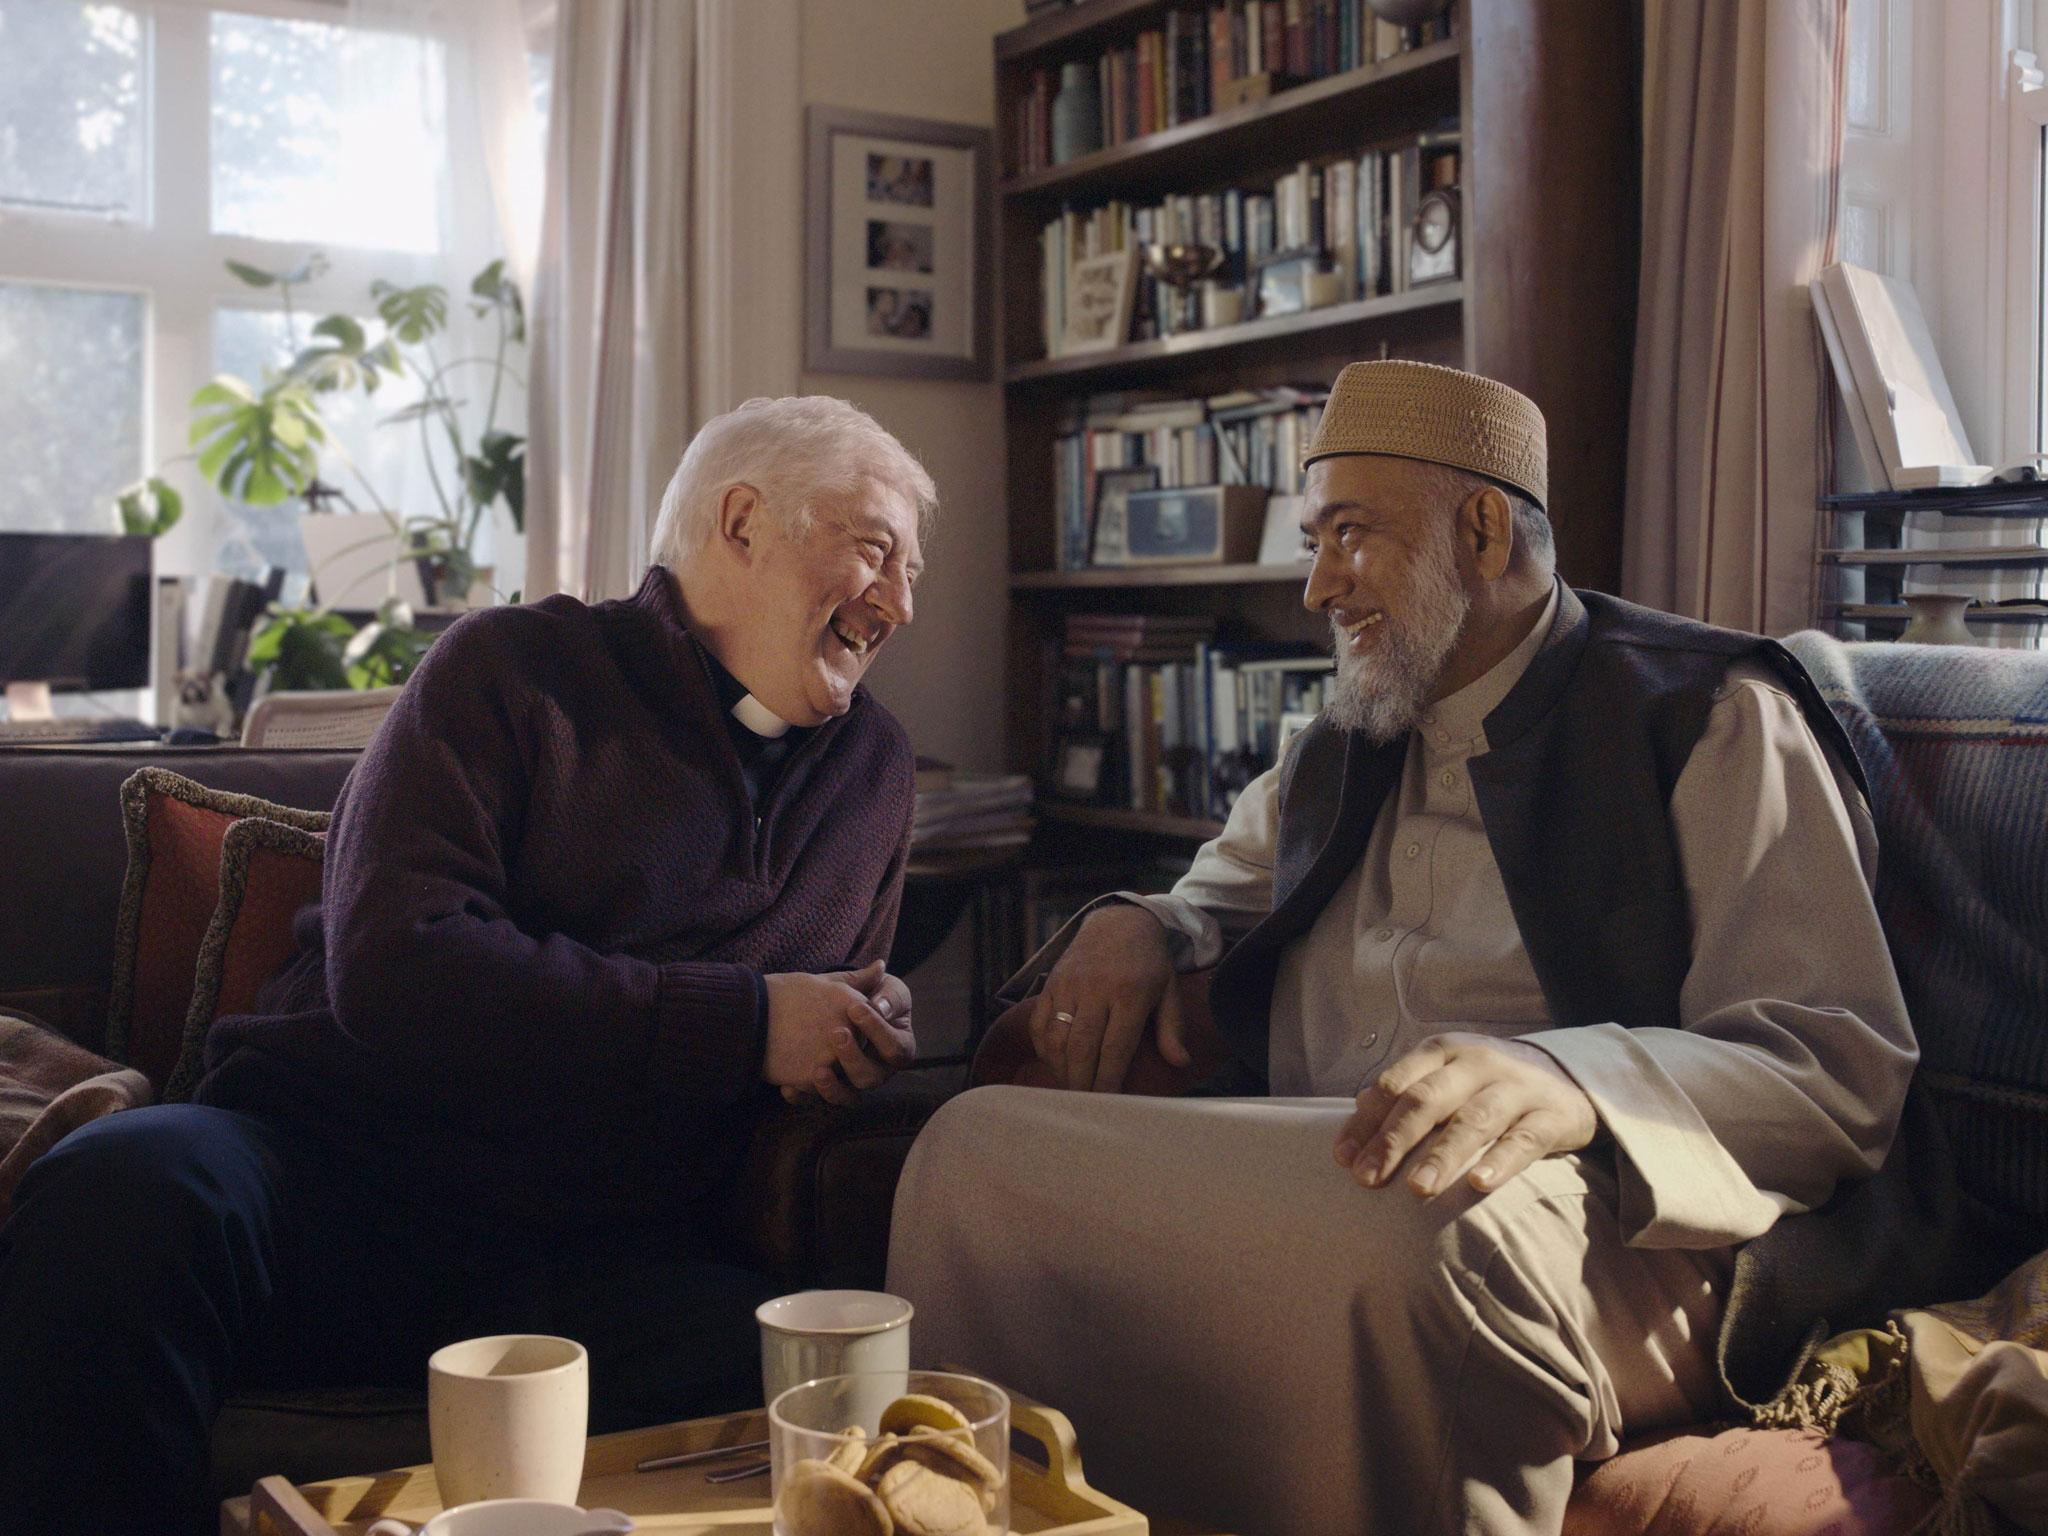 Amazon Christmas advert 2016: Imam and priest push festive message ...